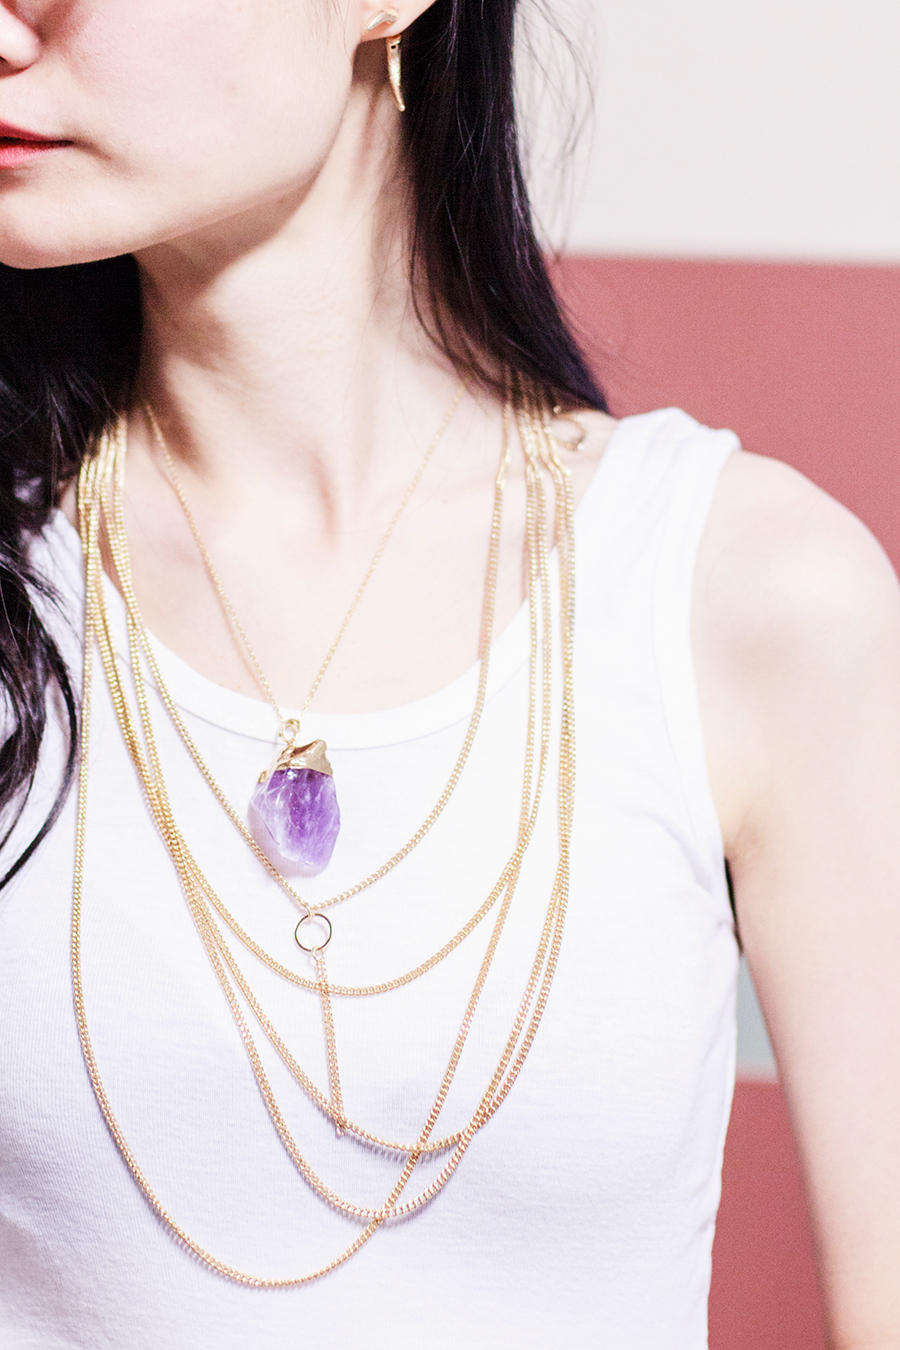 Dealsale amethyst necklace, Topshop gold bodychain as necklace, WholesaleBuying white tank crop top.